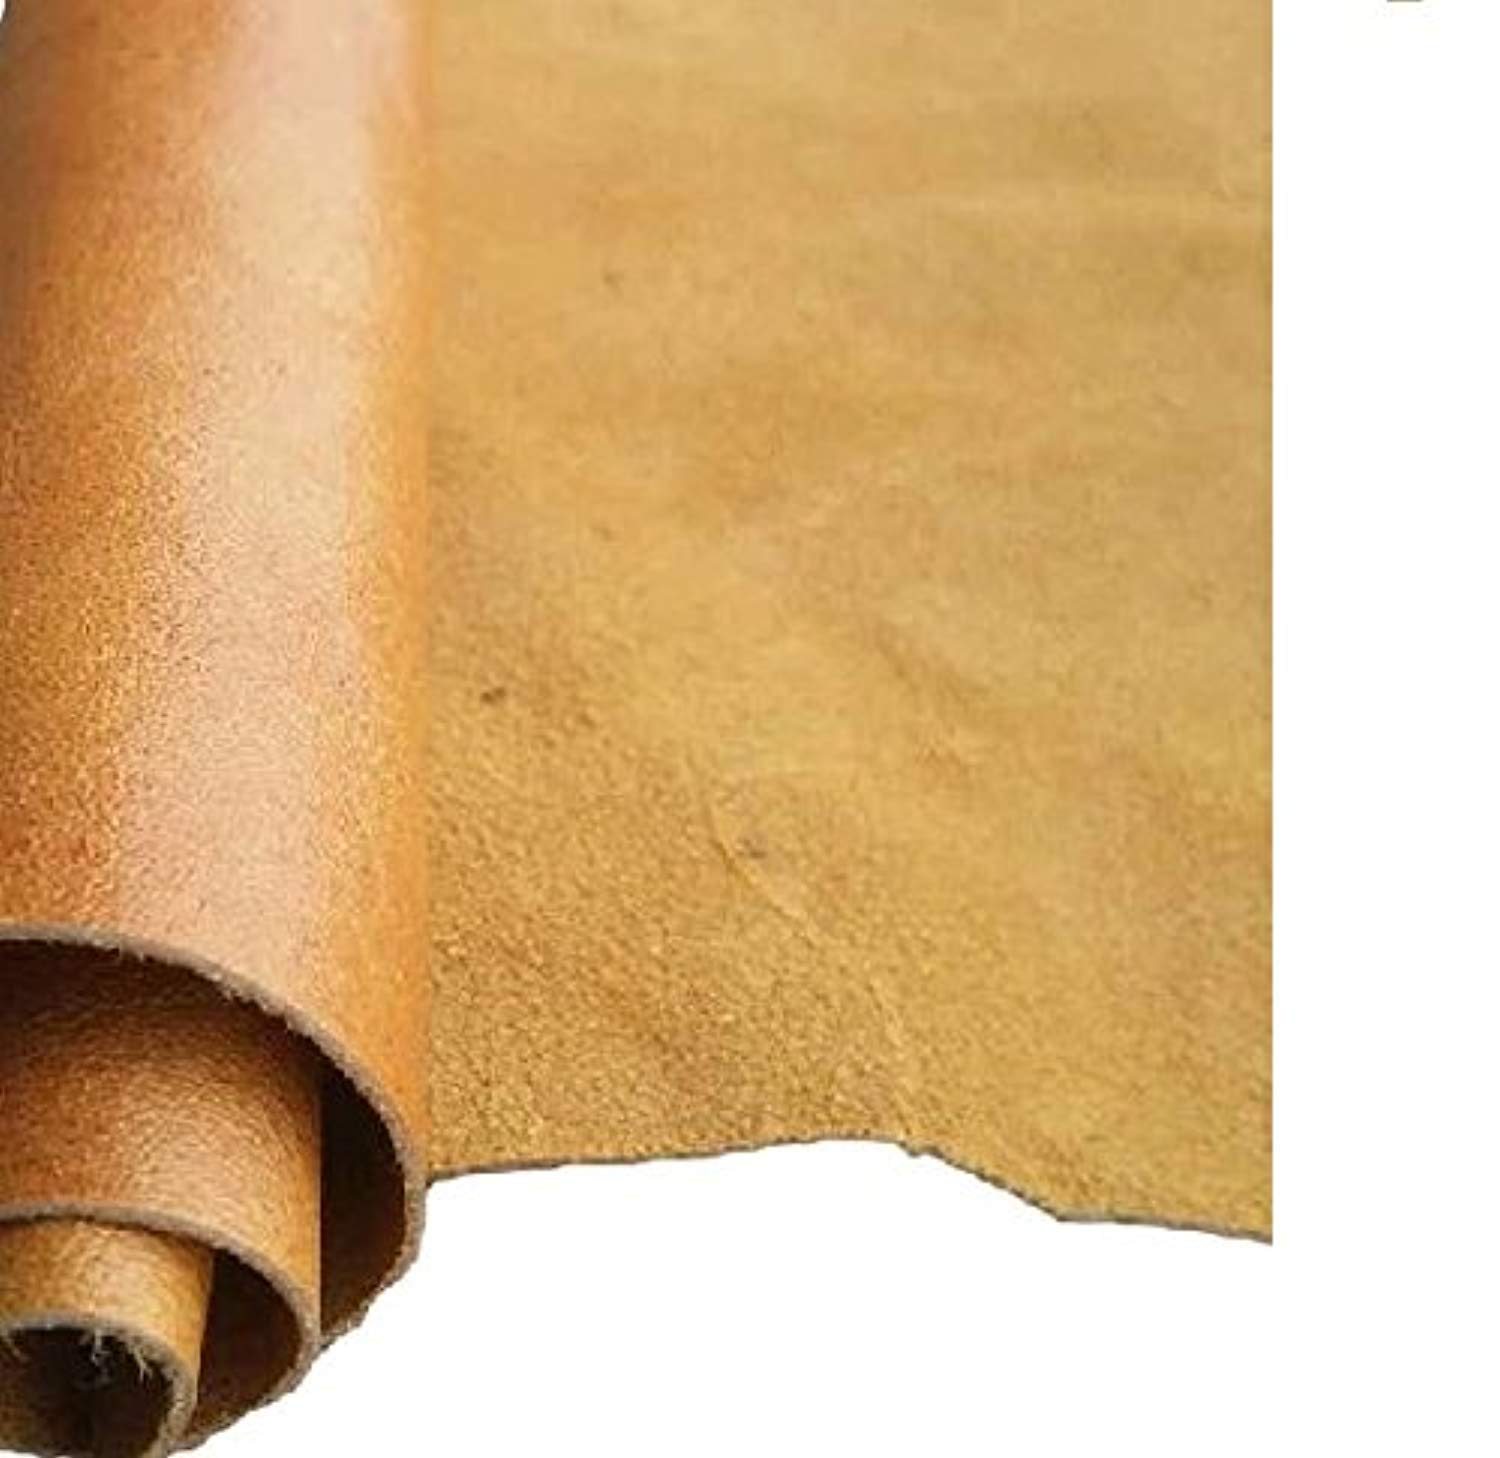 REED Leather HIDES - Cow Skins Various Colors & Sizes (10 Square Foot, Camel)